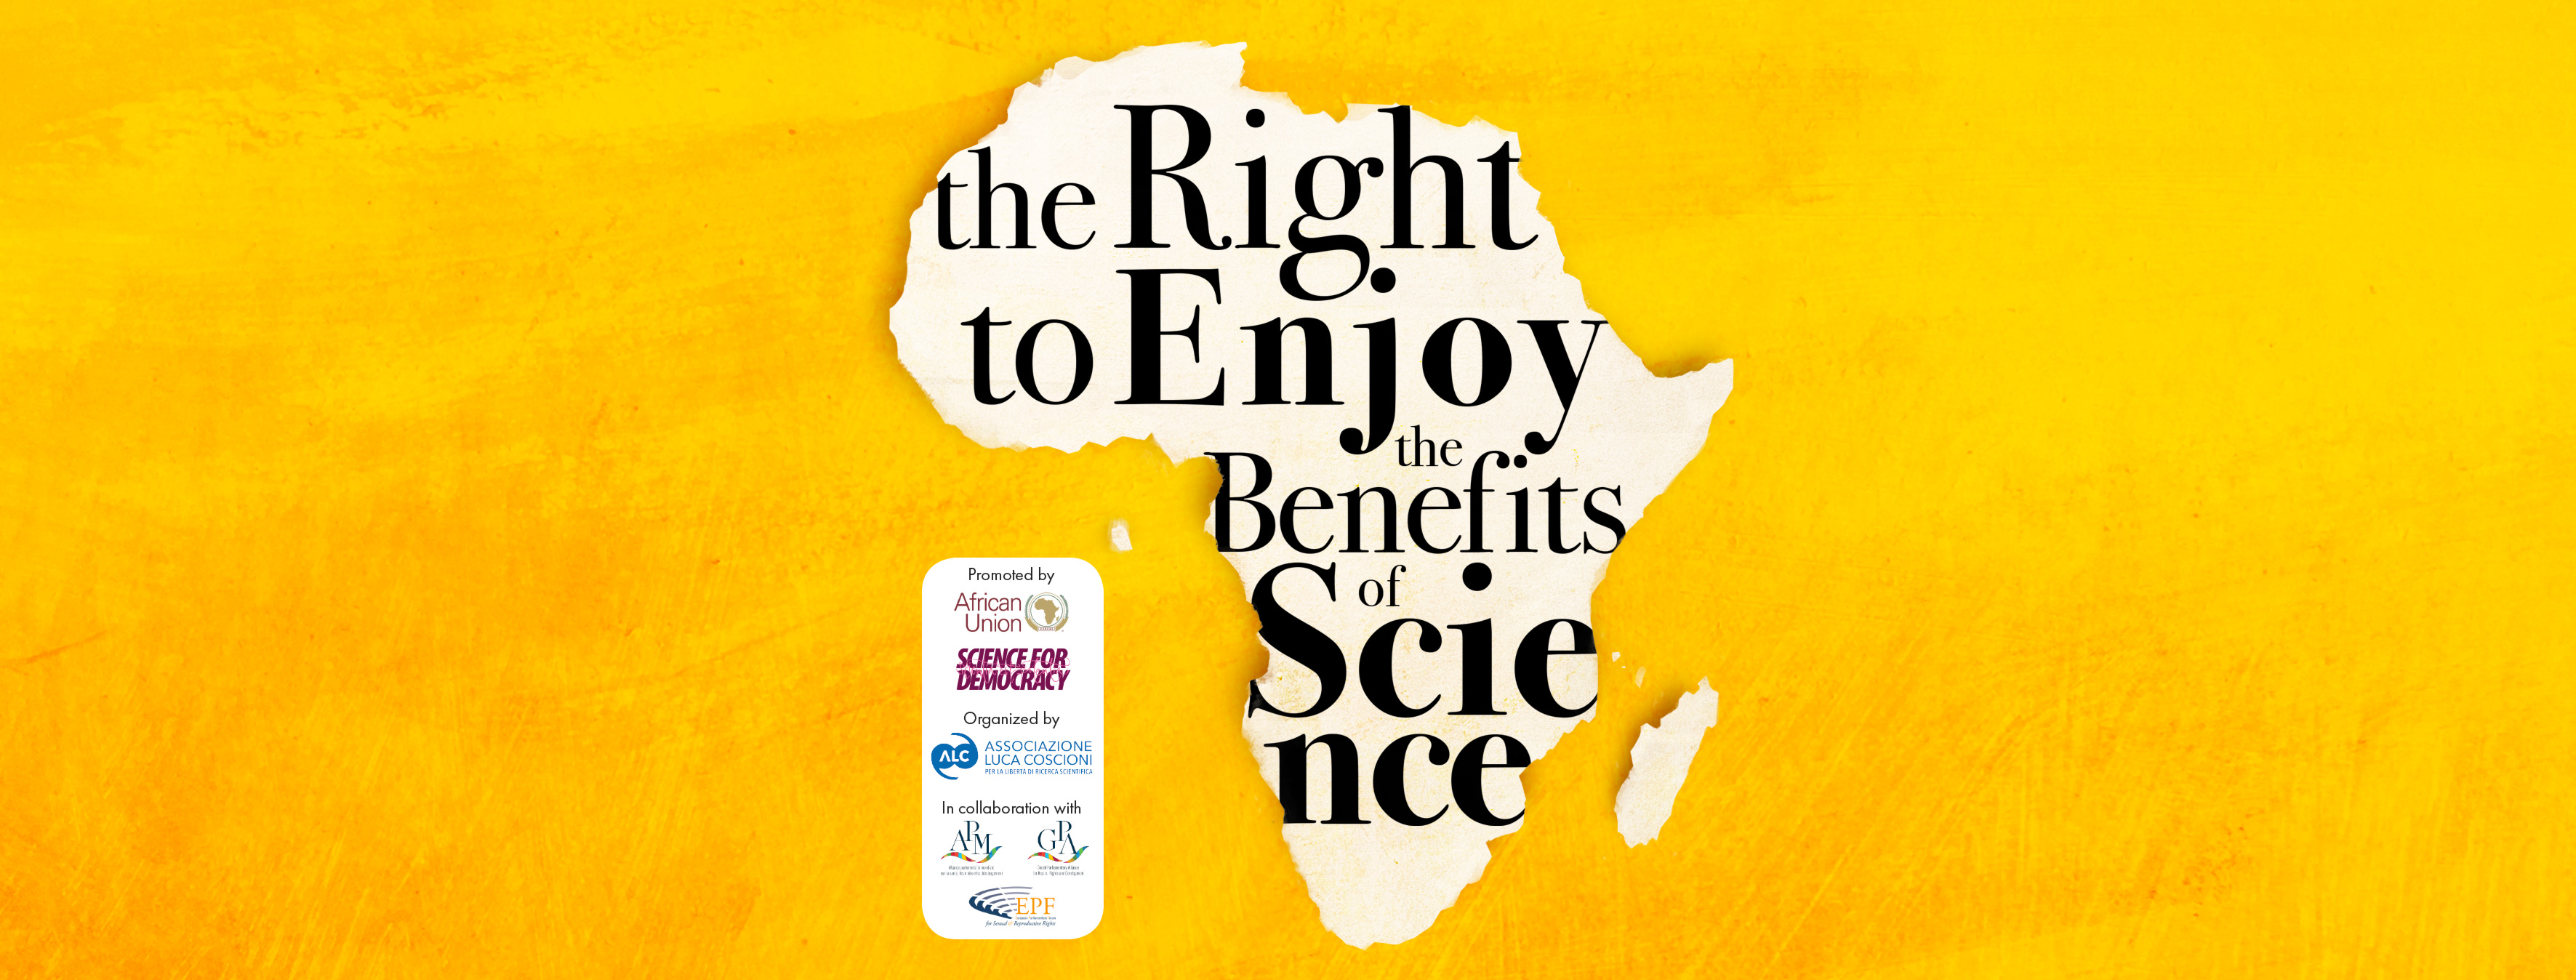 the right to enjoy the benefits of science